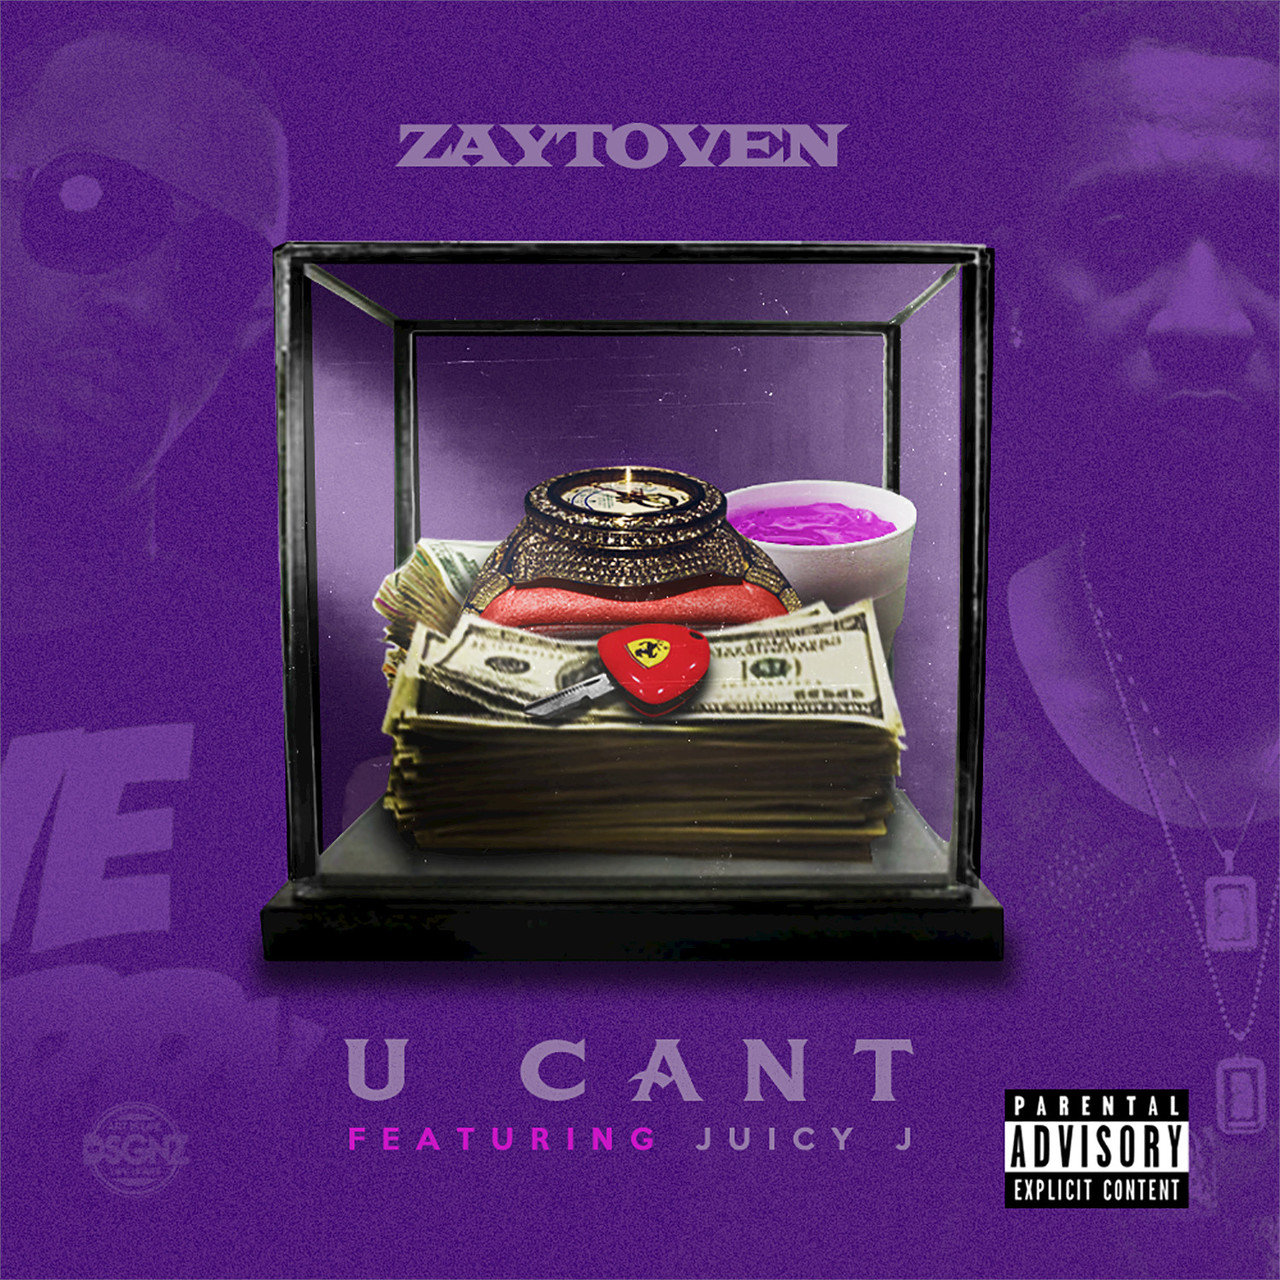 U Can't (feat. Juicy J)